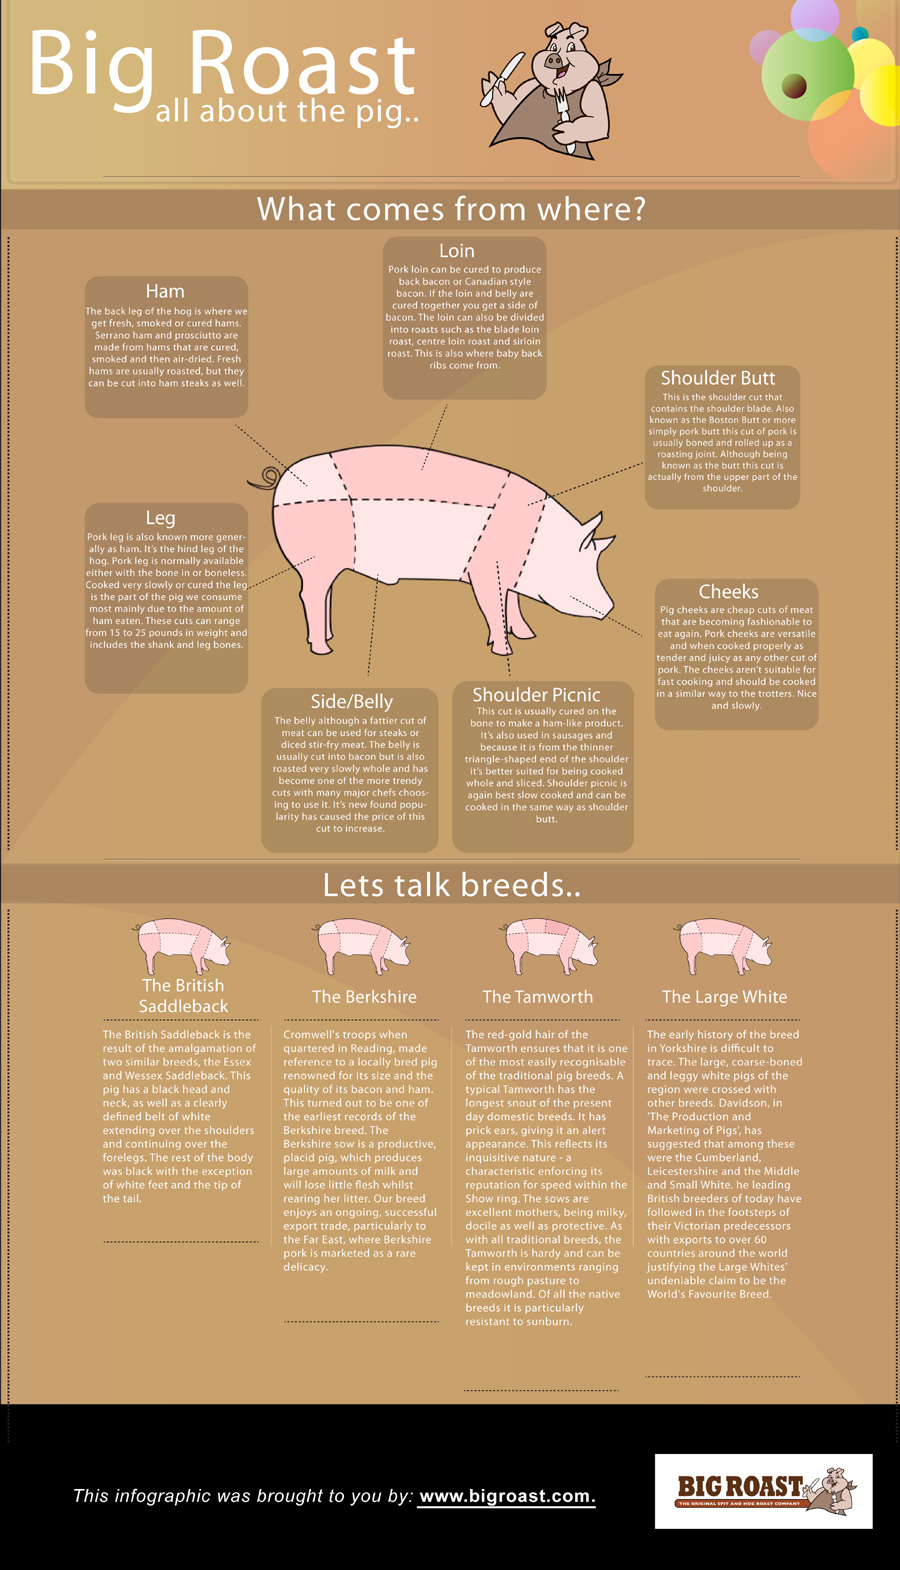 all-about-the-pig_50b769118a785